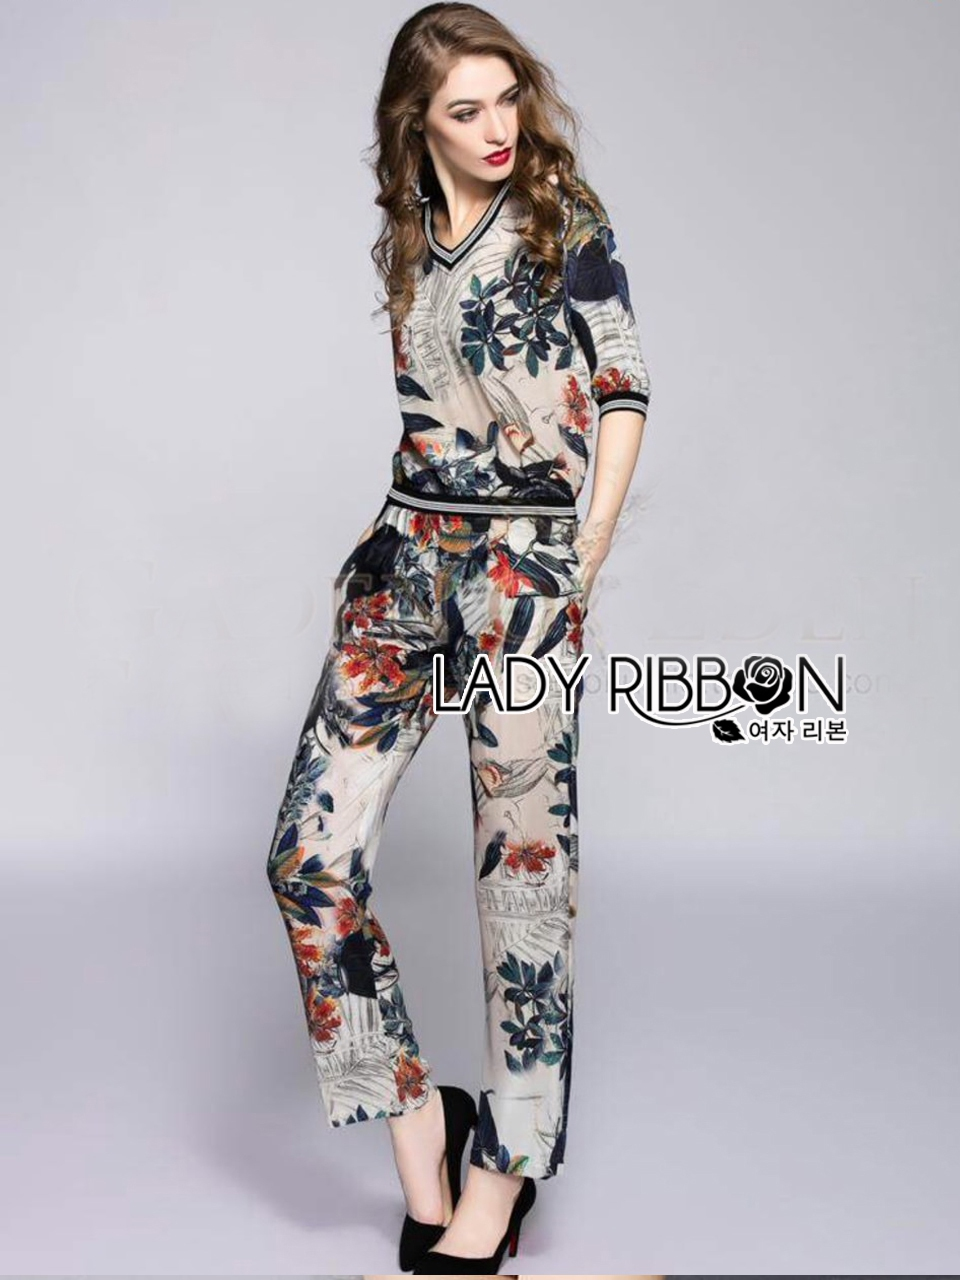 Lady Ribbon's Made Lady Rachel Into the Wild Floral Printed Ensemble Set